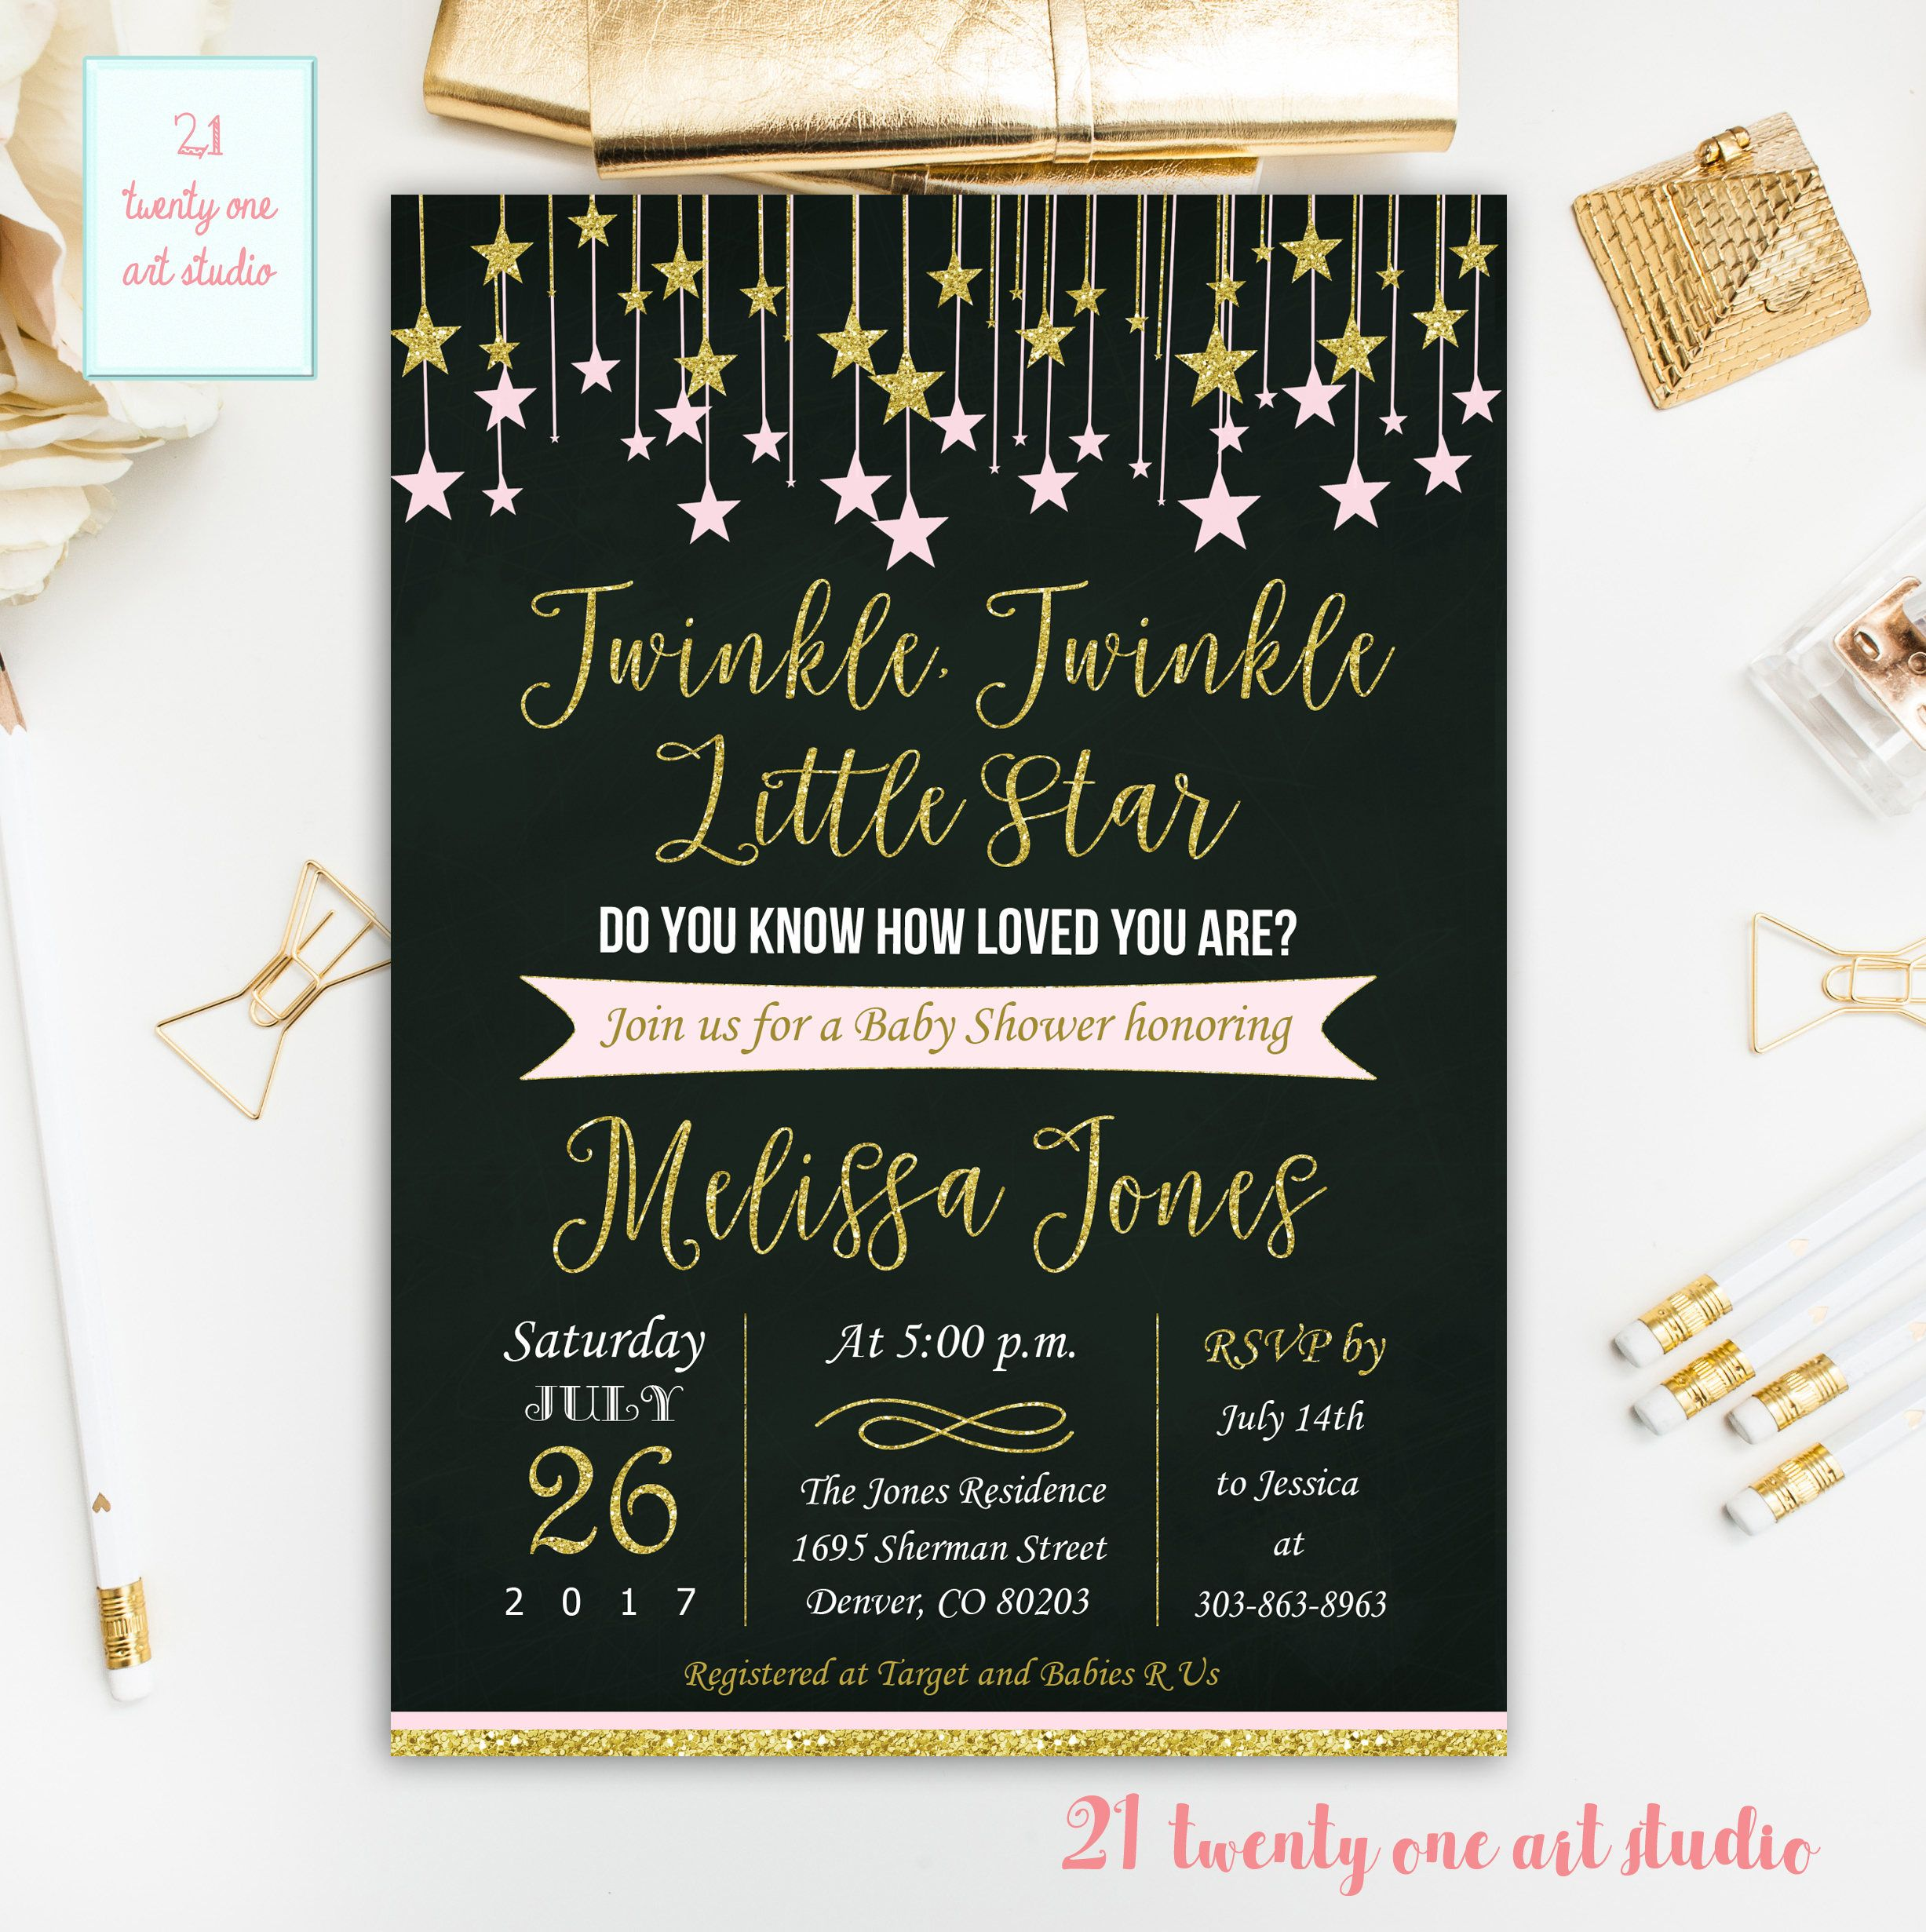 Twinkle Twinkle Little Star Baby Shower Invitation, Pink and Gold ...